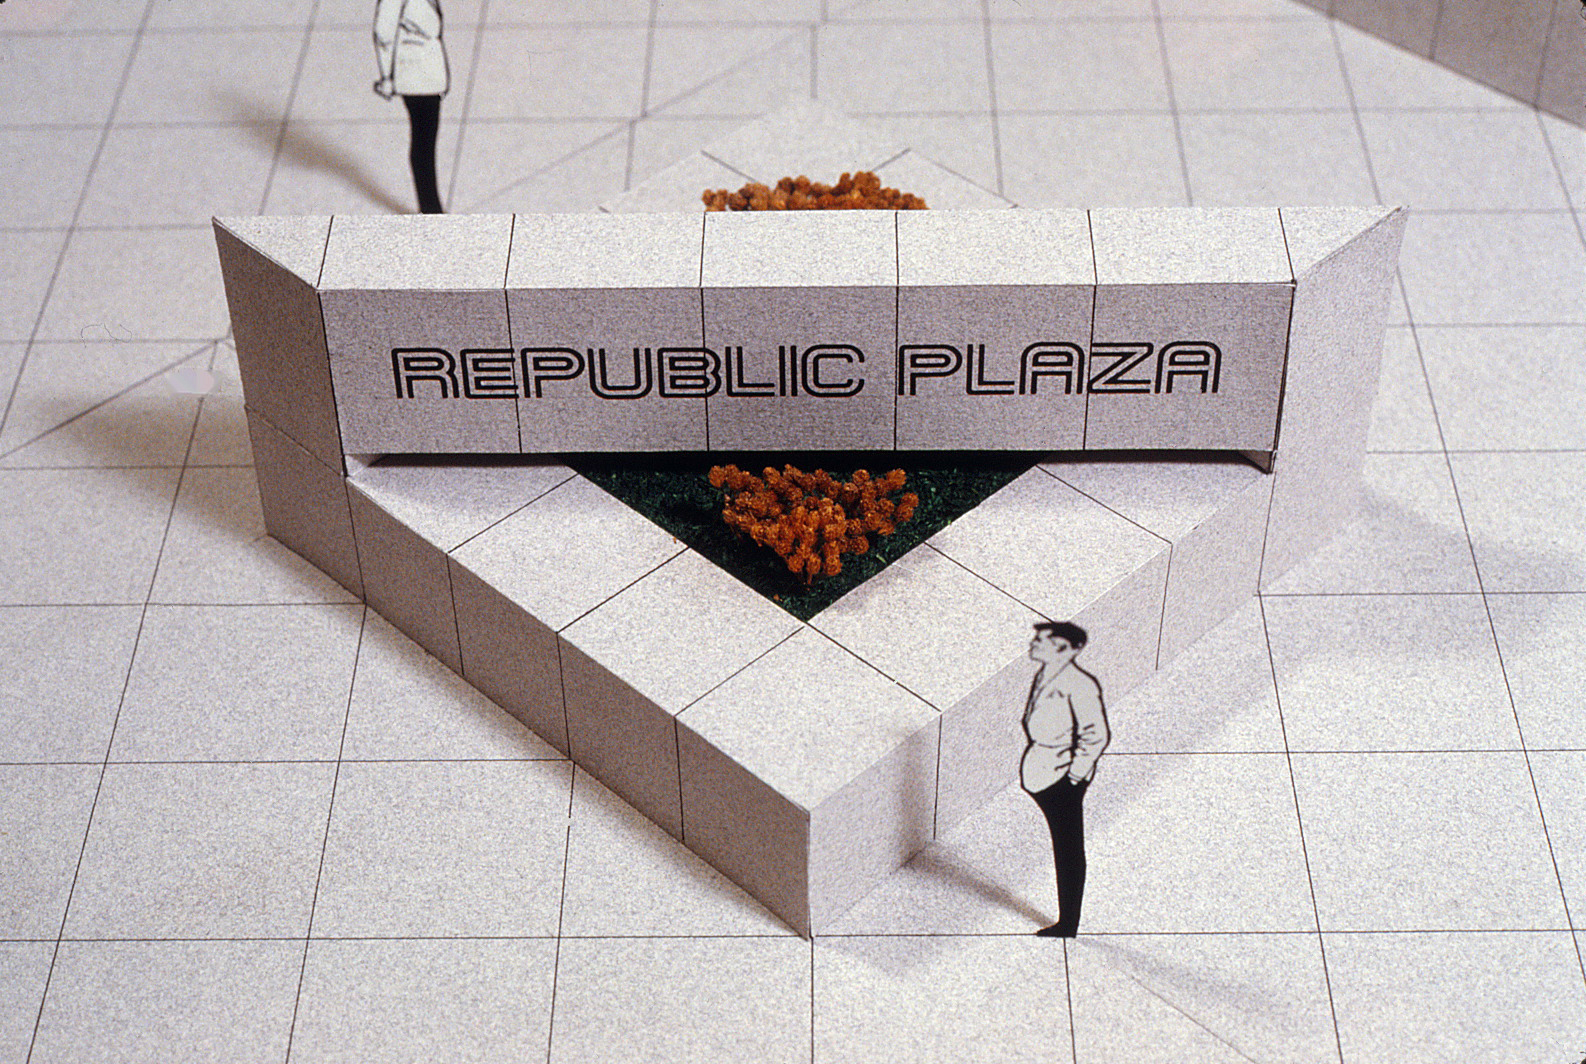 Drawing of the planned street corner planter with Republic Plaza written in stone above it.